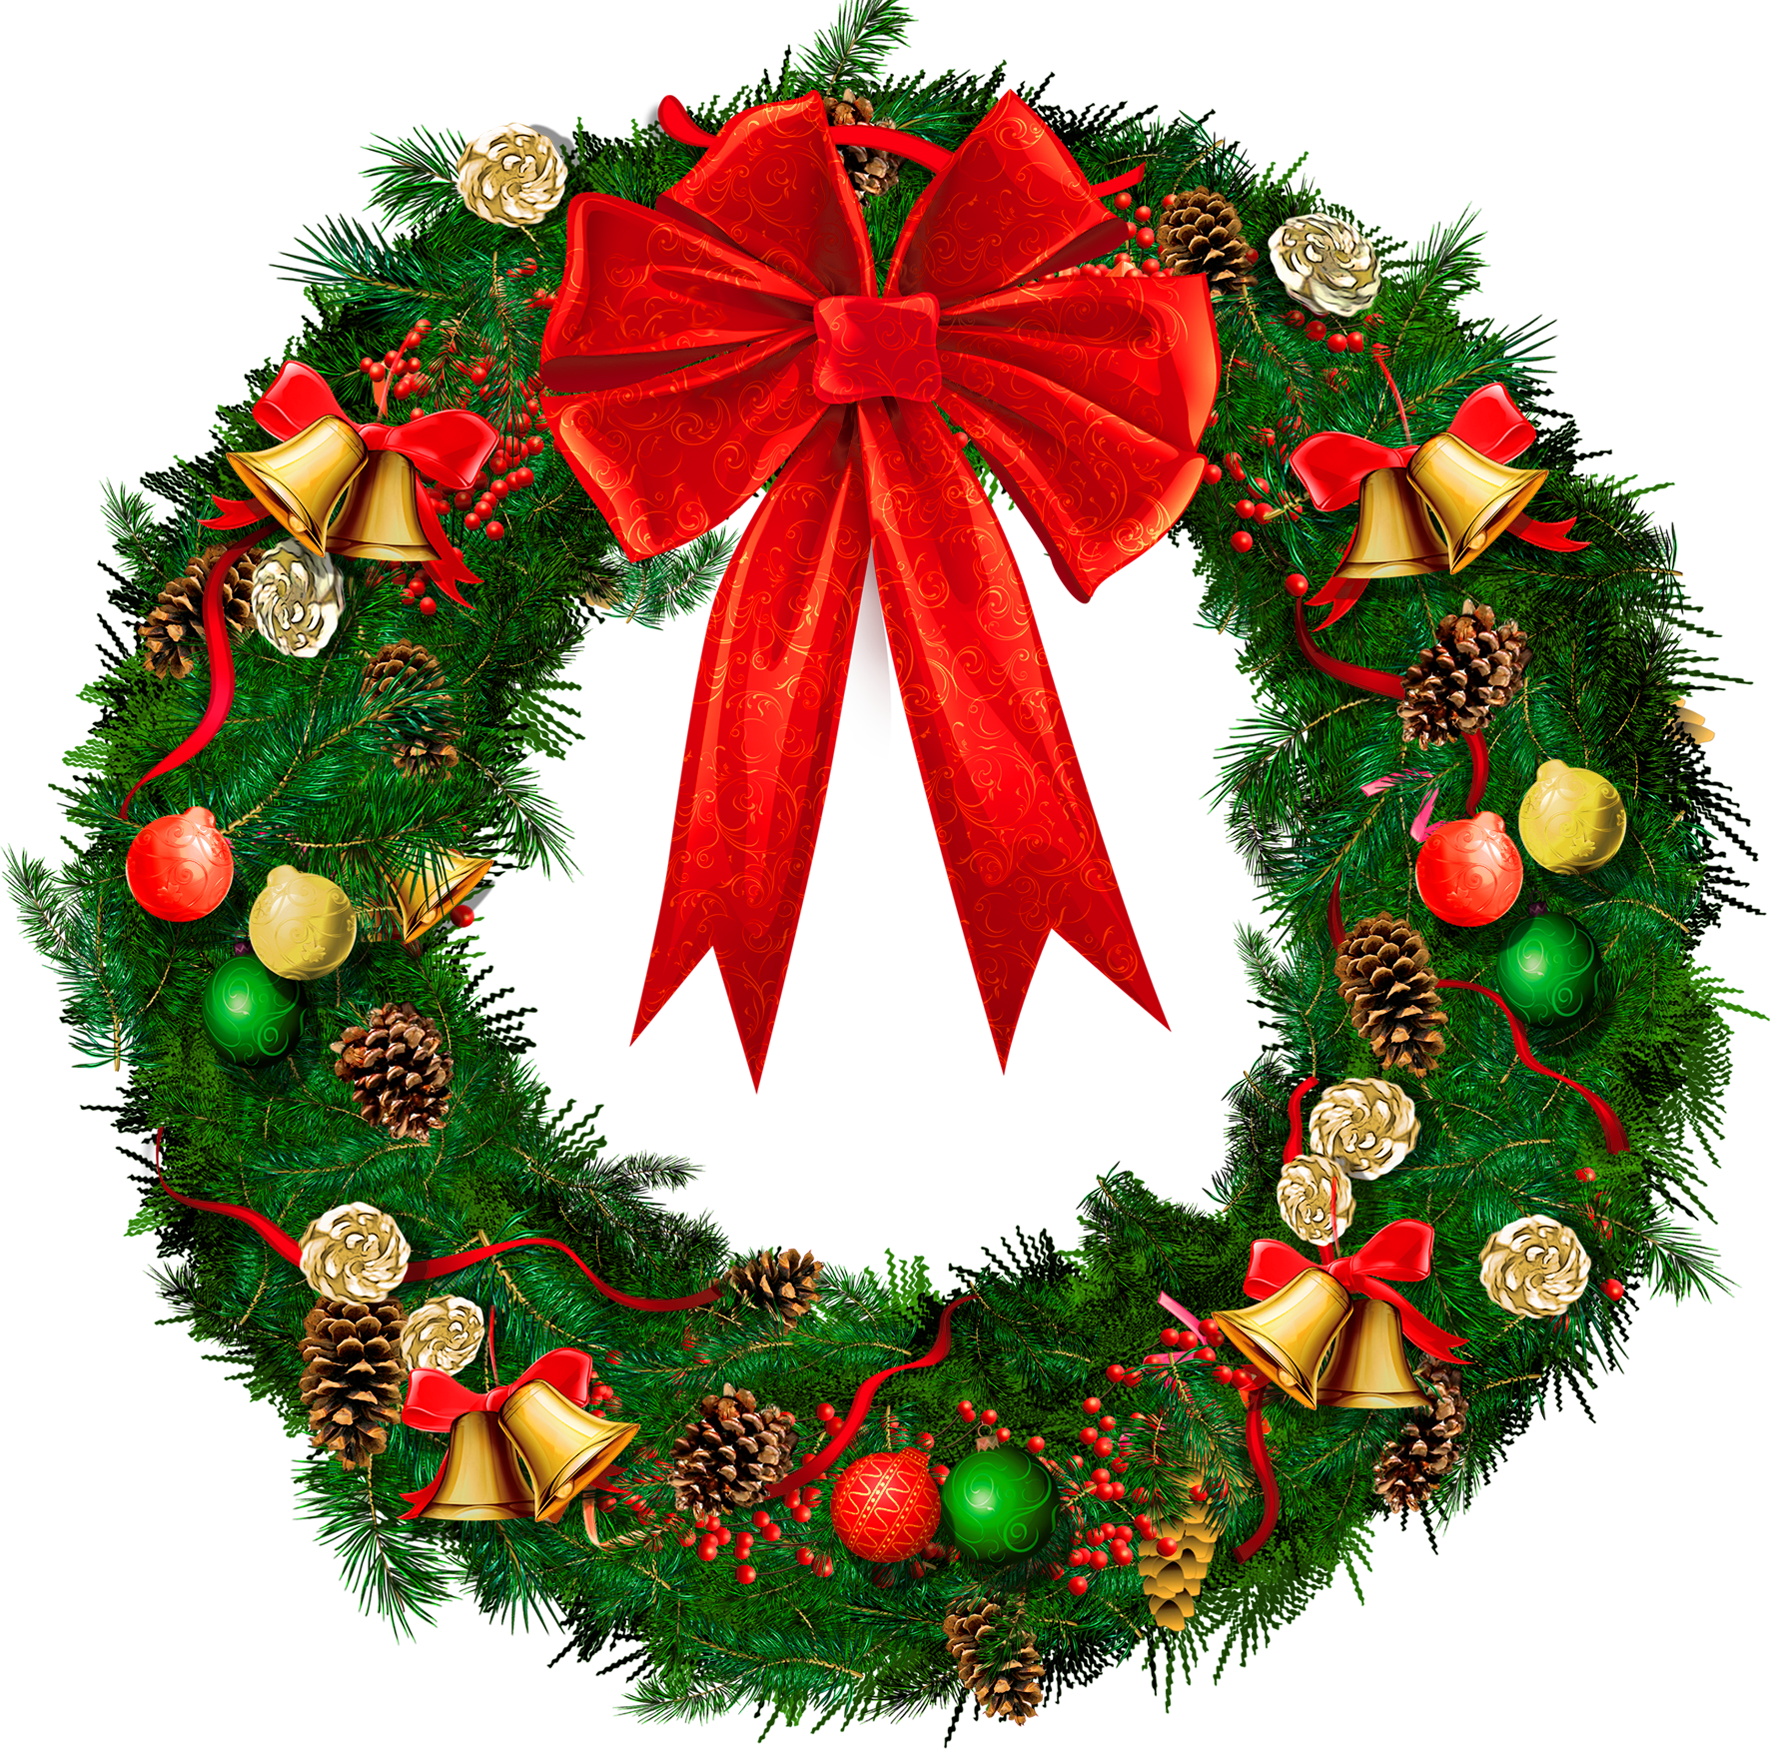 Xmas wreaths images clipart graphic library download Free Christmas Wreath Clipart, Download Free Clip Art, Free ... graphic library download